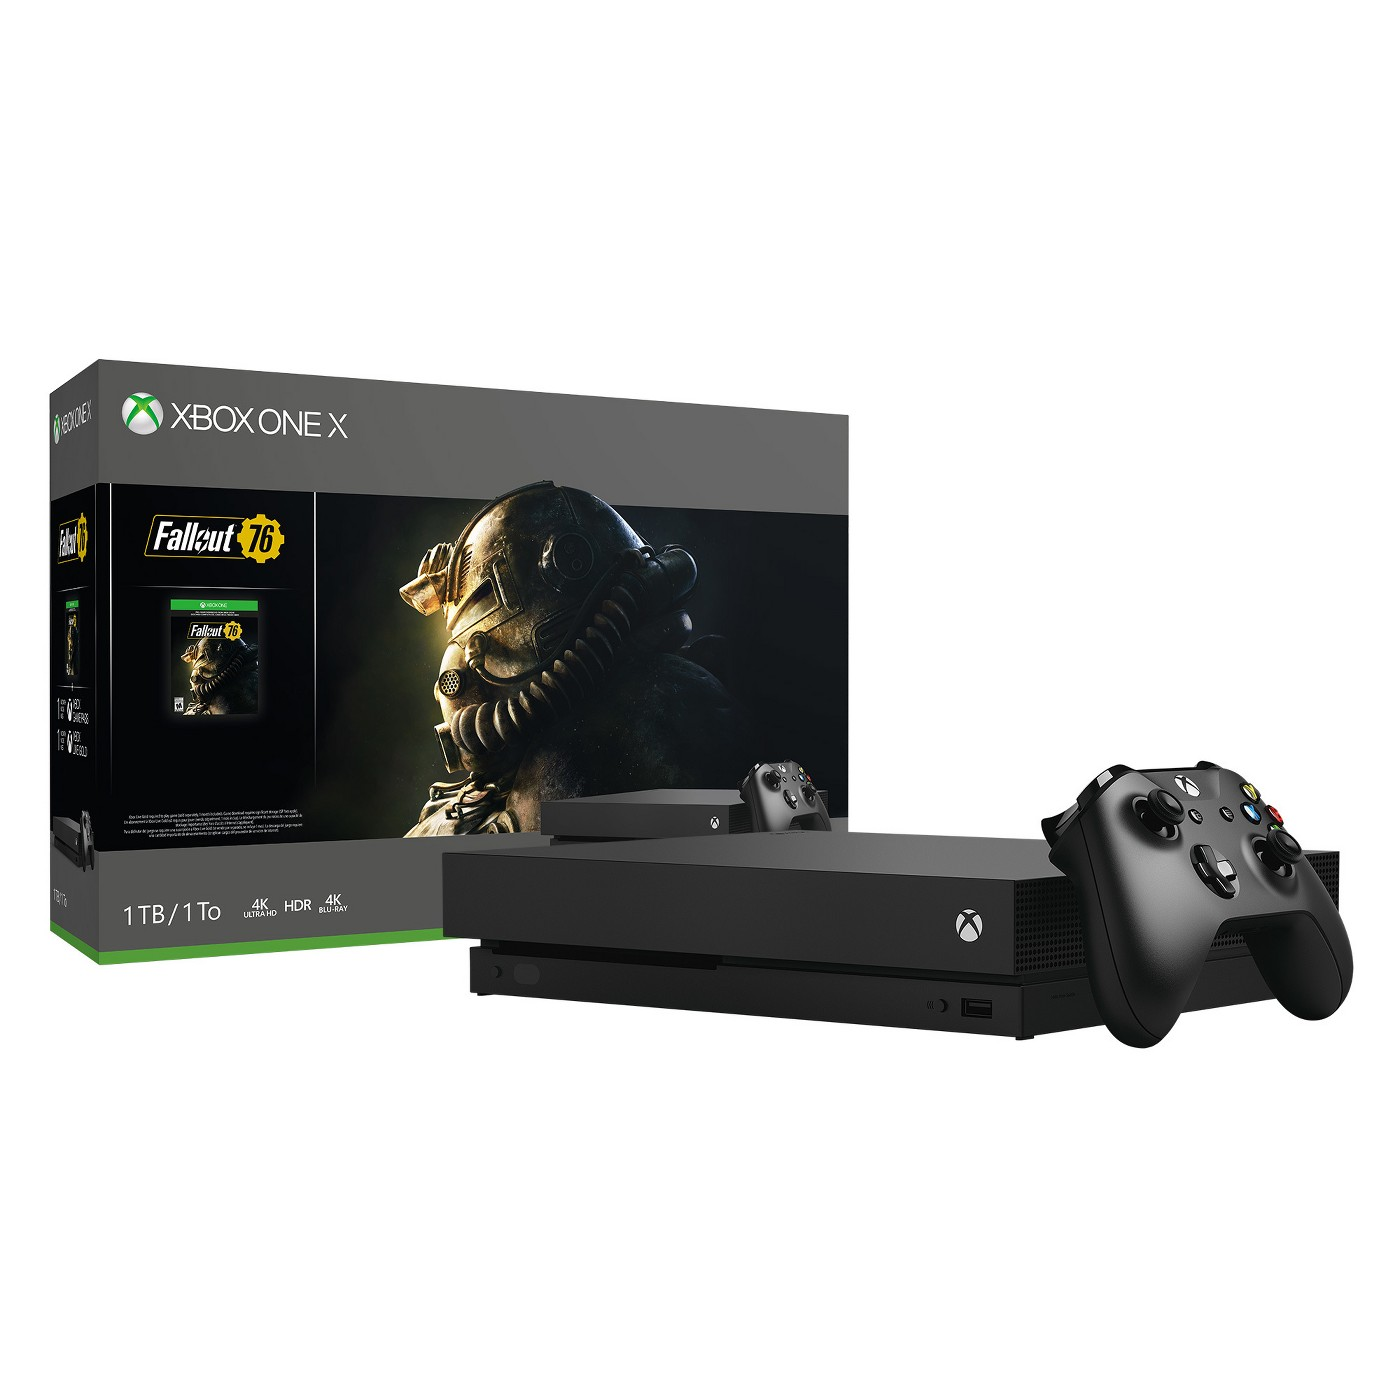 Save 20% on Xbox One X 1TB Fallout 76 Bundle